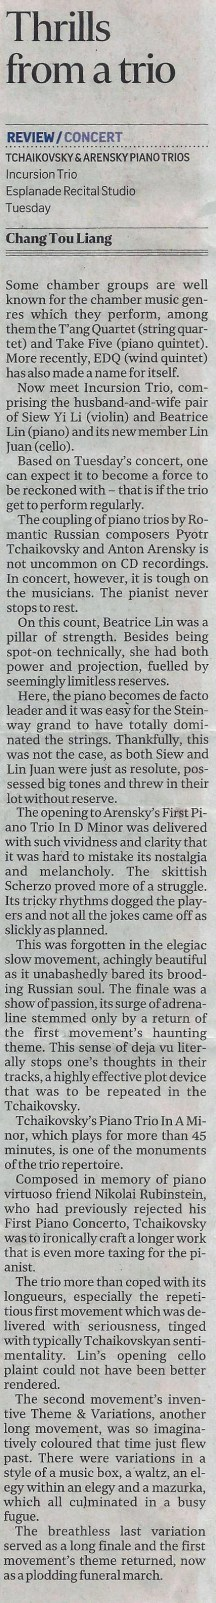 The Straits Times, LIFE! Page D7 | 13th July 2017 (Friday) Reviewer: Chang Tou Liang